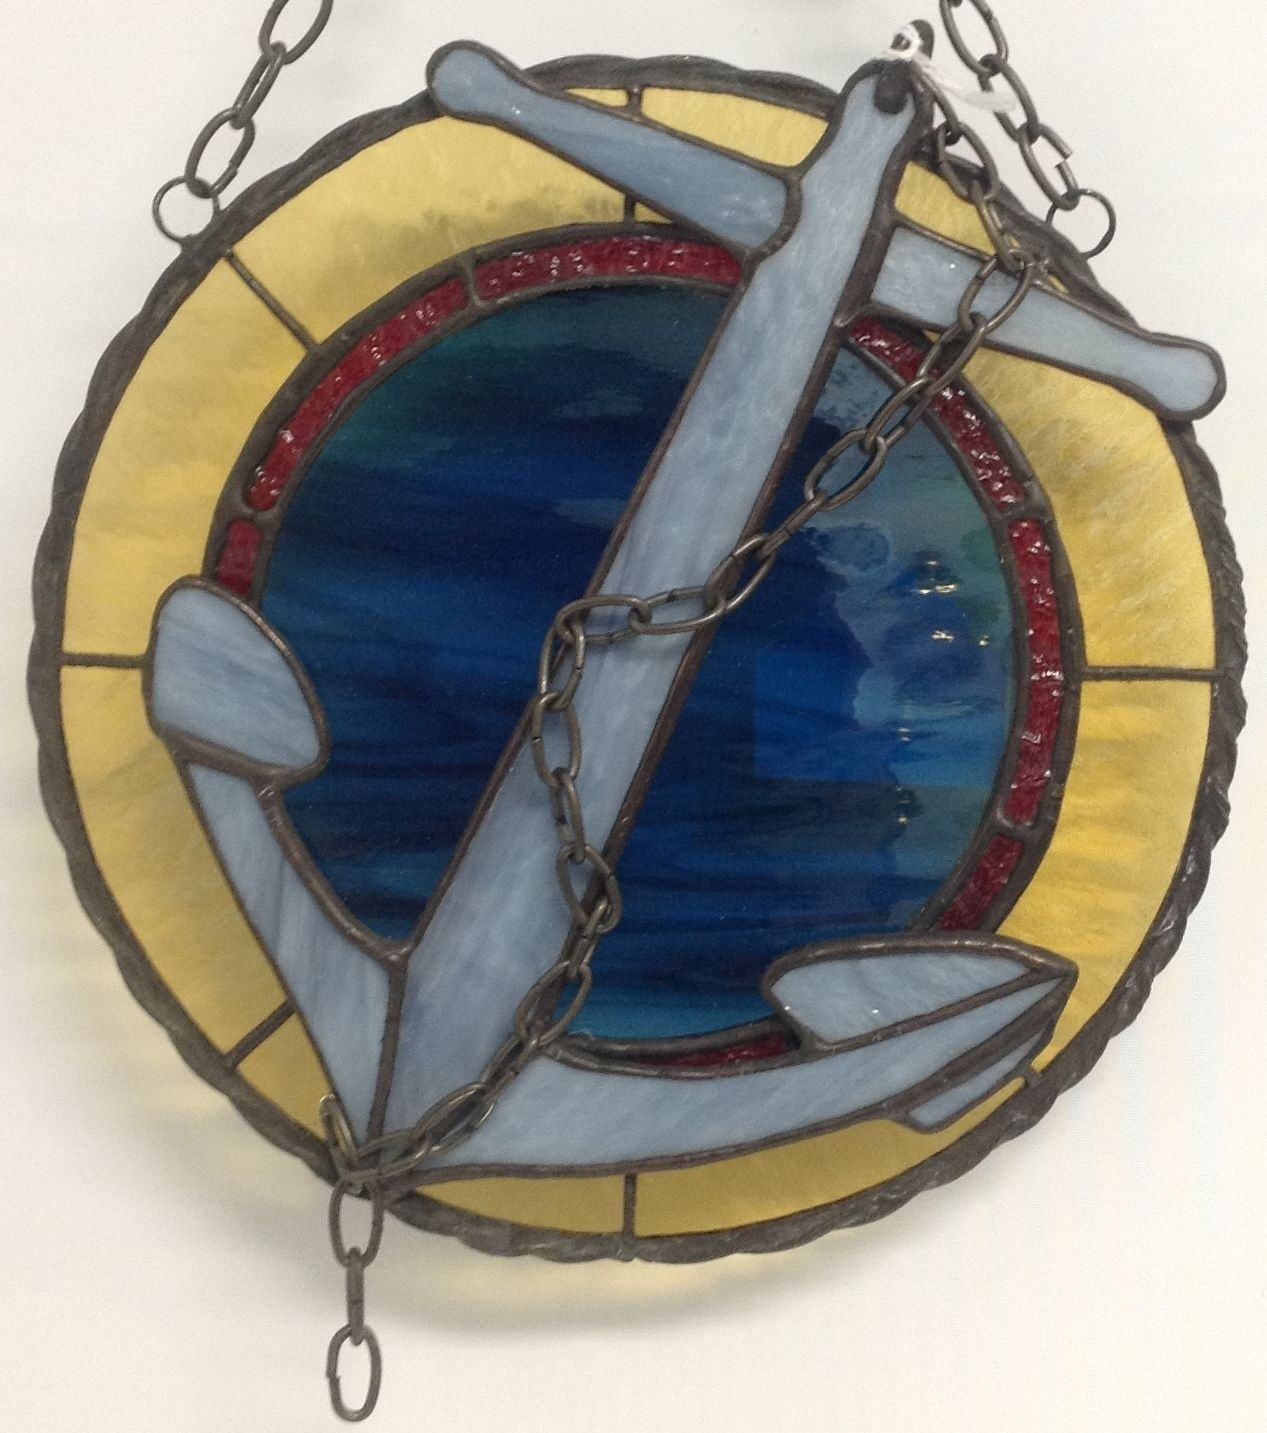 Anchor emblem inspiration kit stained glass art sea